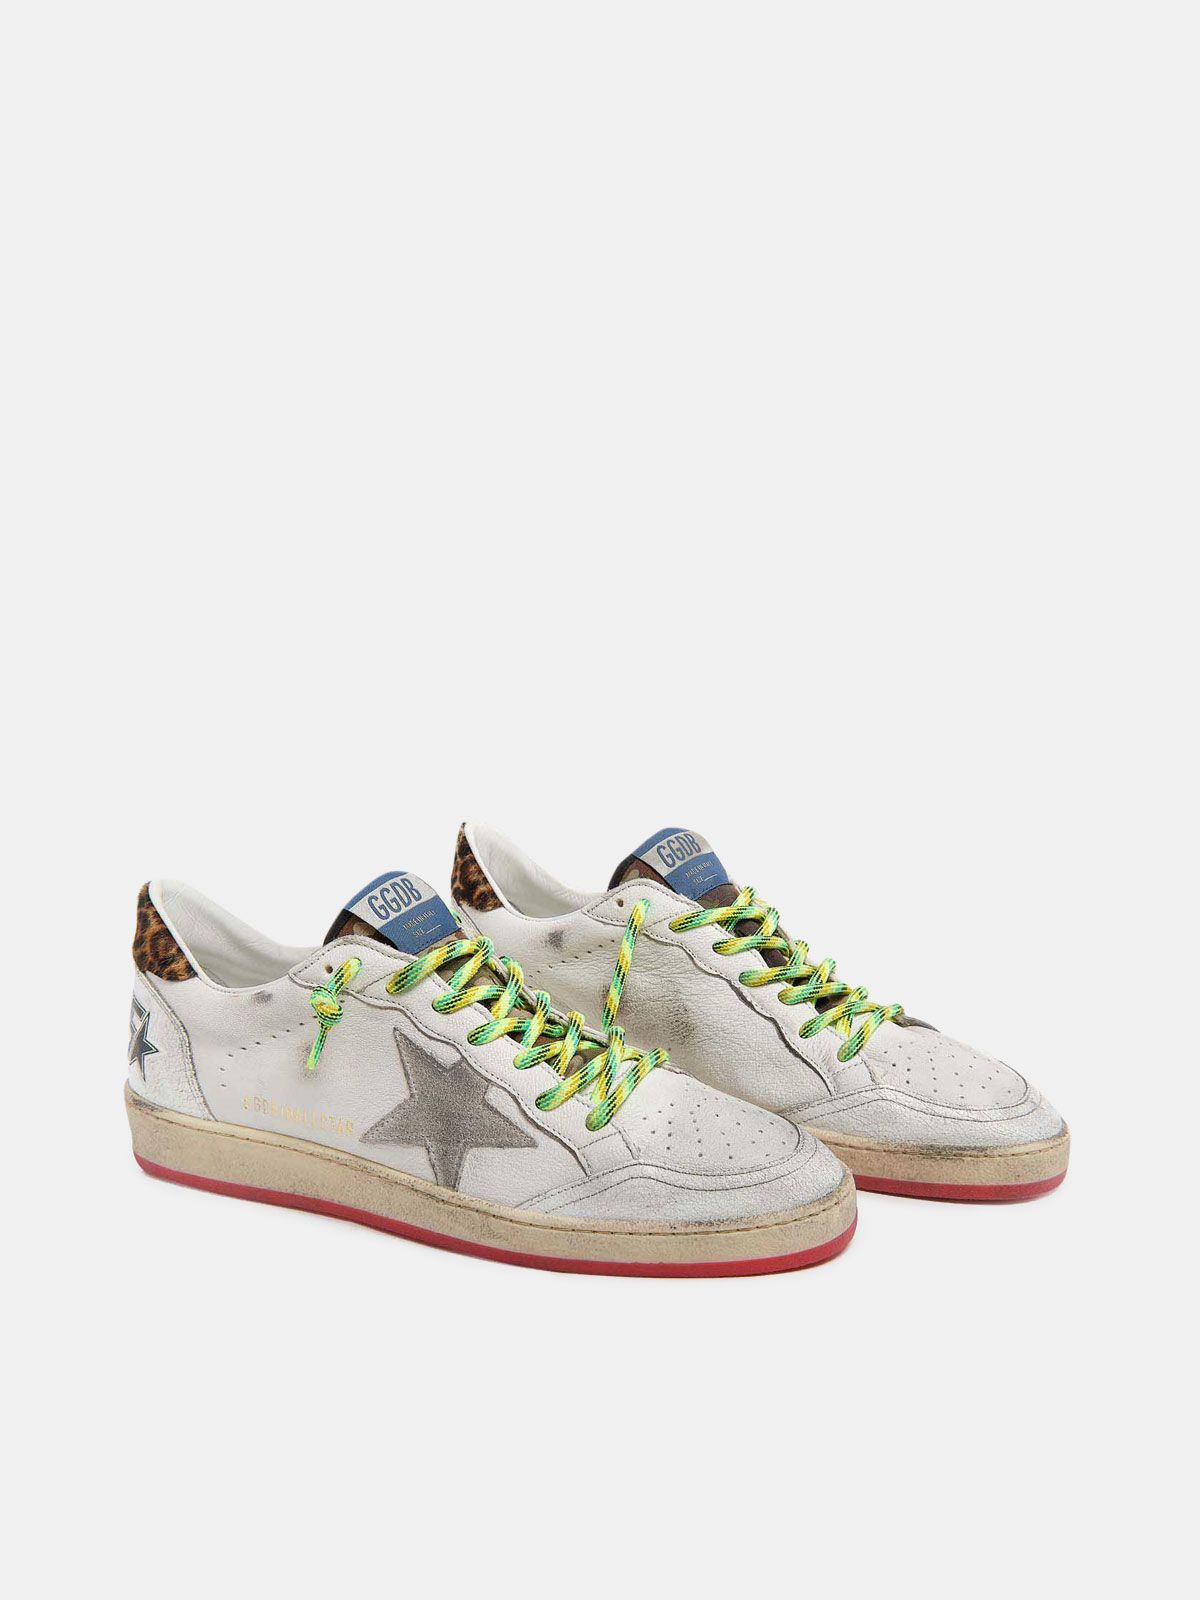 Golden Goose - Bell Star sneakers in nappa leather with trekking laces in